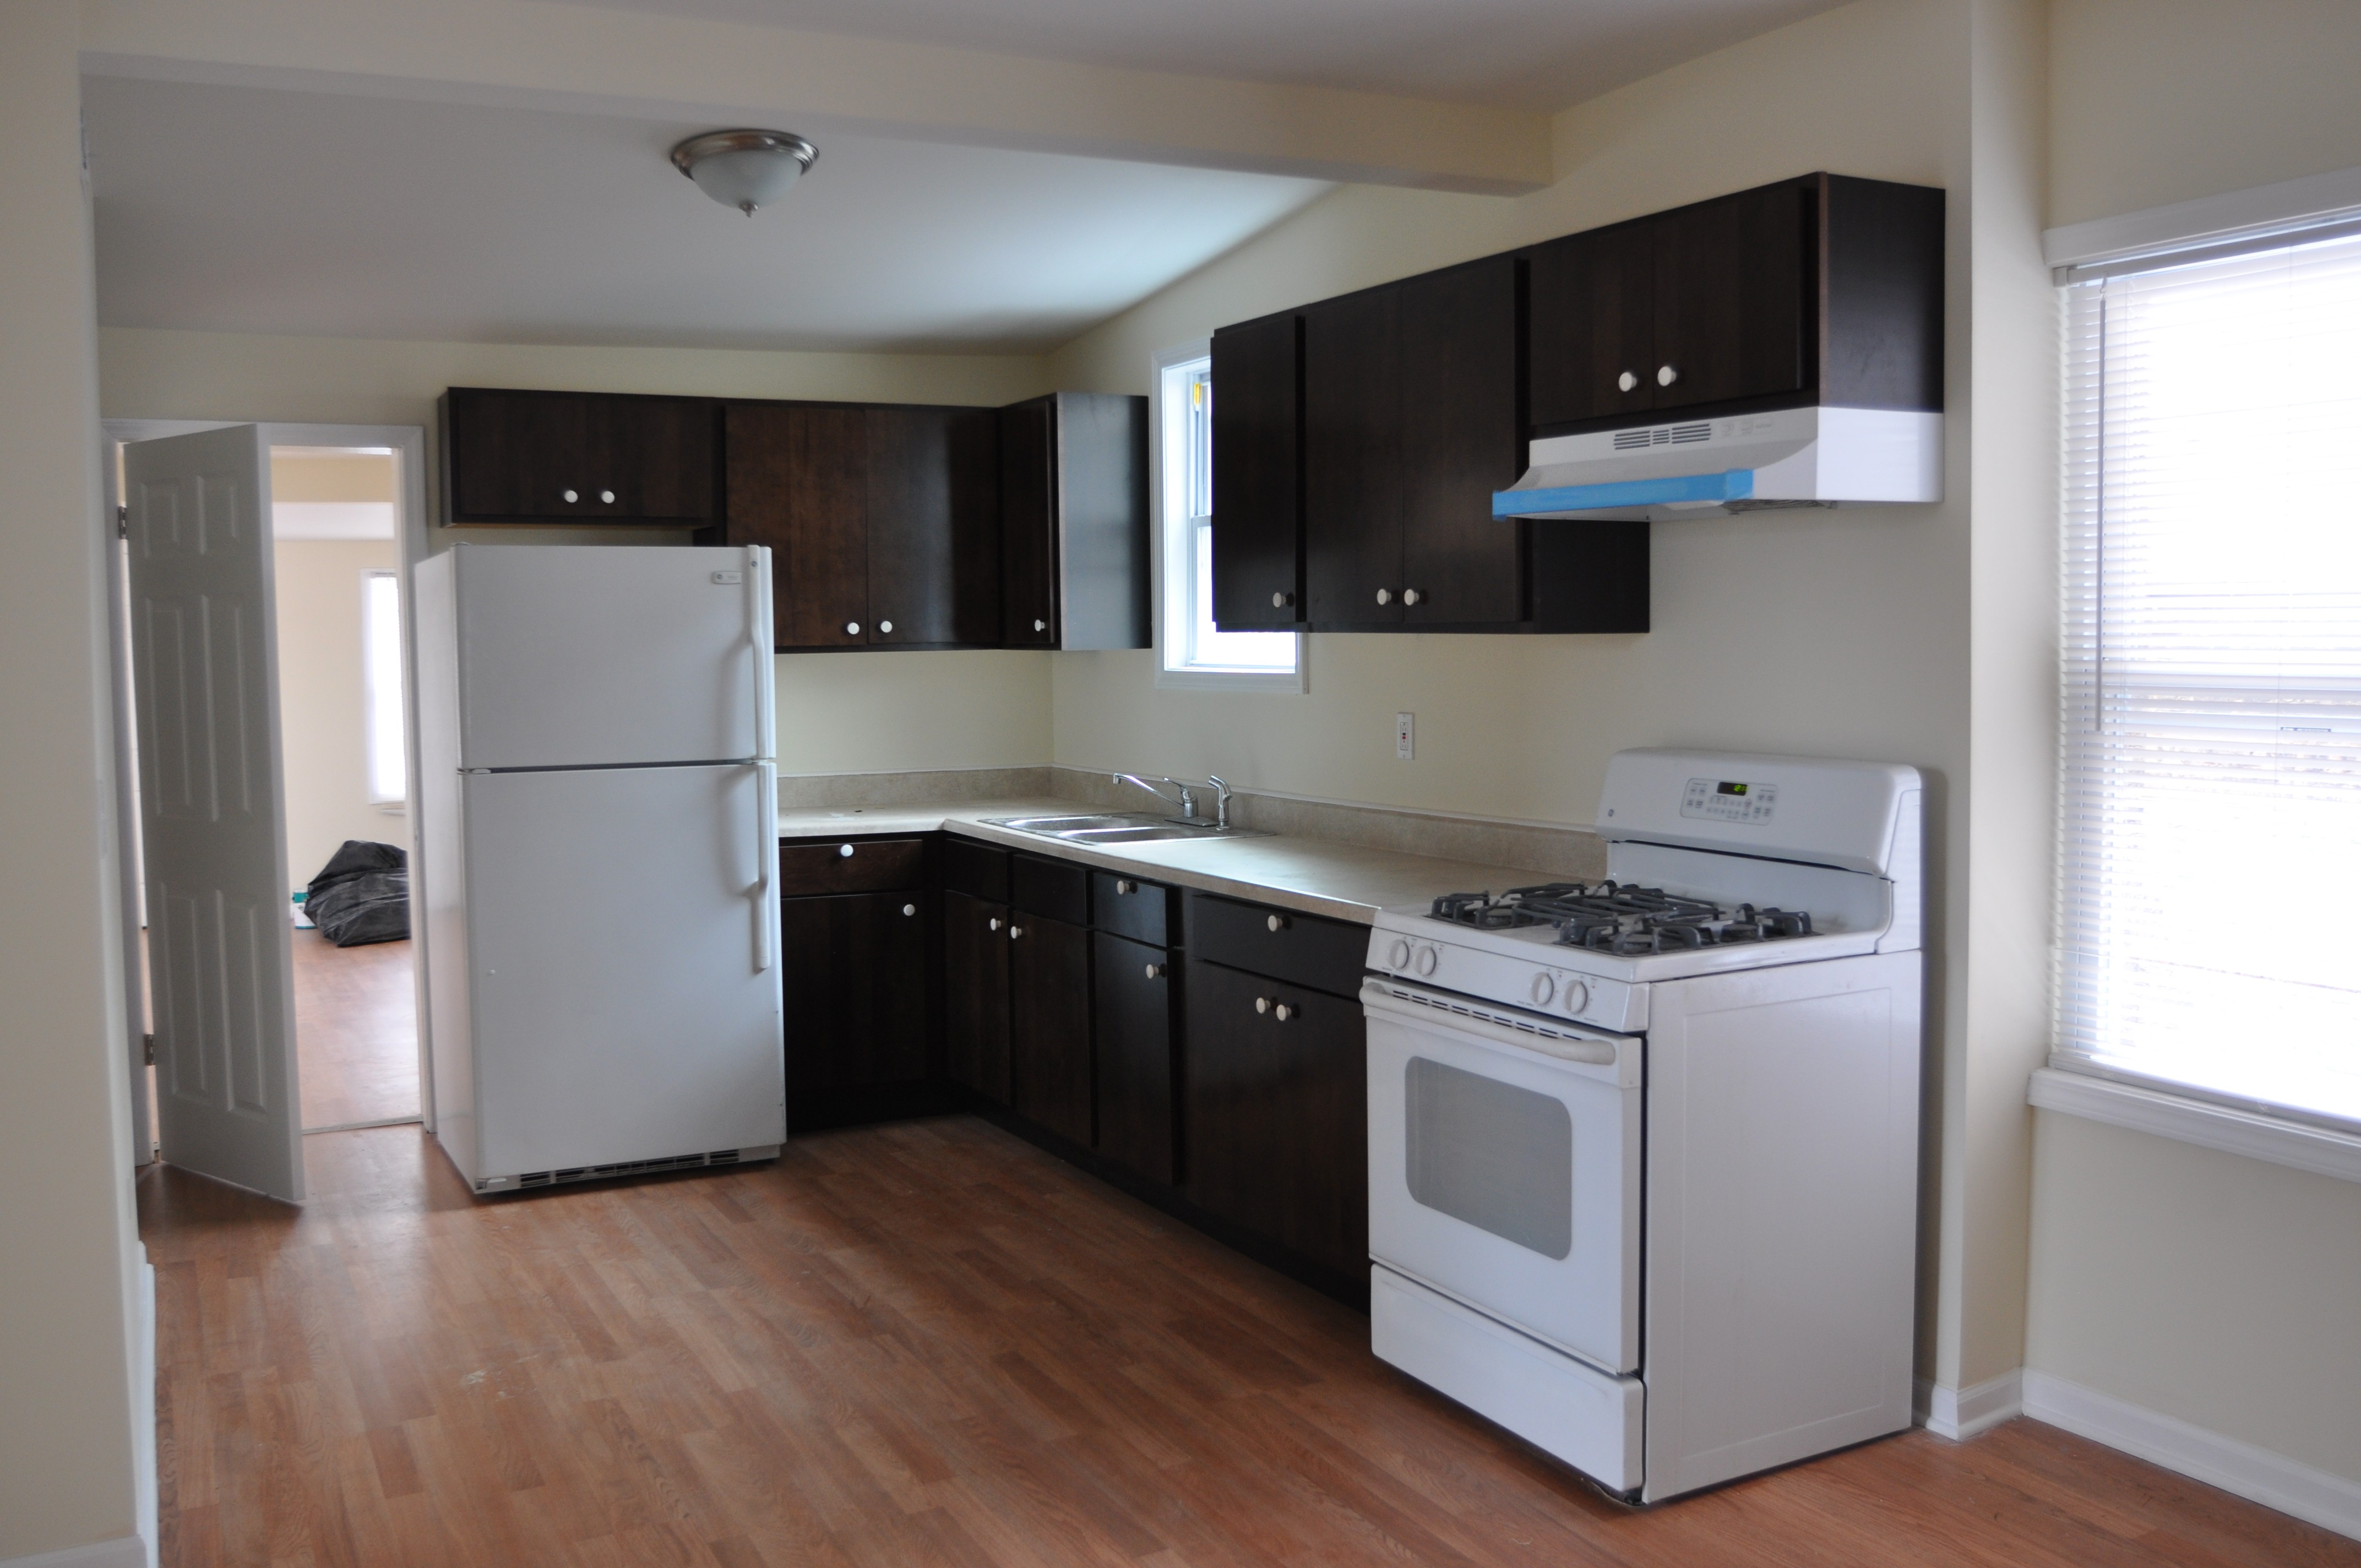 5305 West Fullerton Avenue 2 Chicago Il 60639 3 Bedroom Apartment For Rent For 1 400 Month